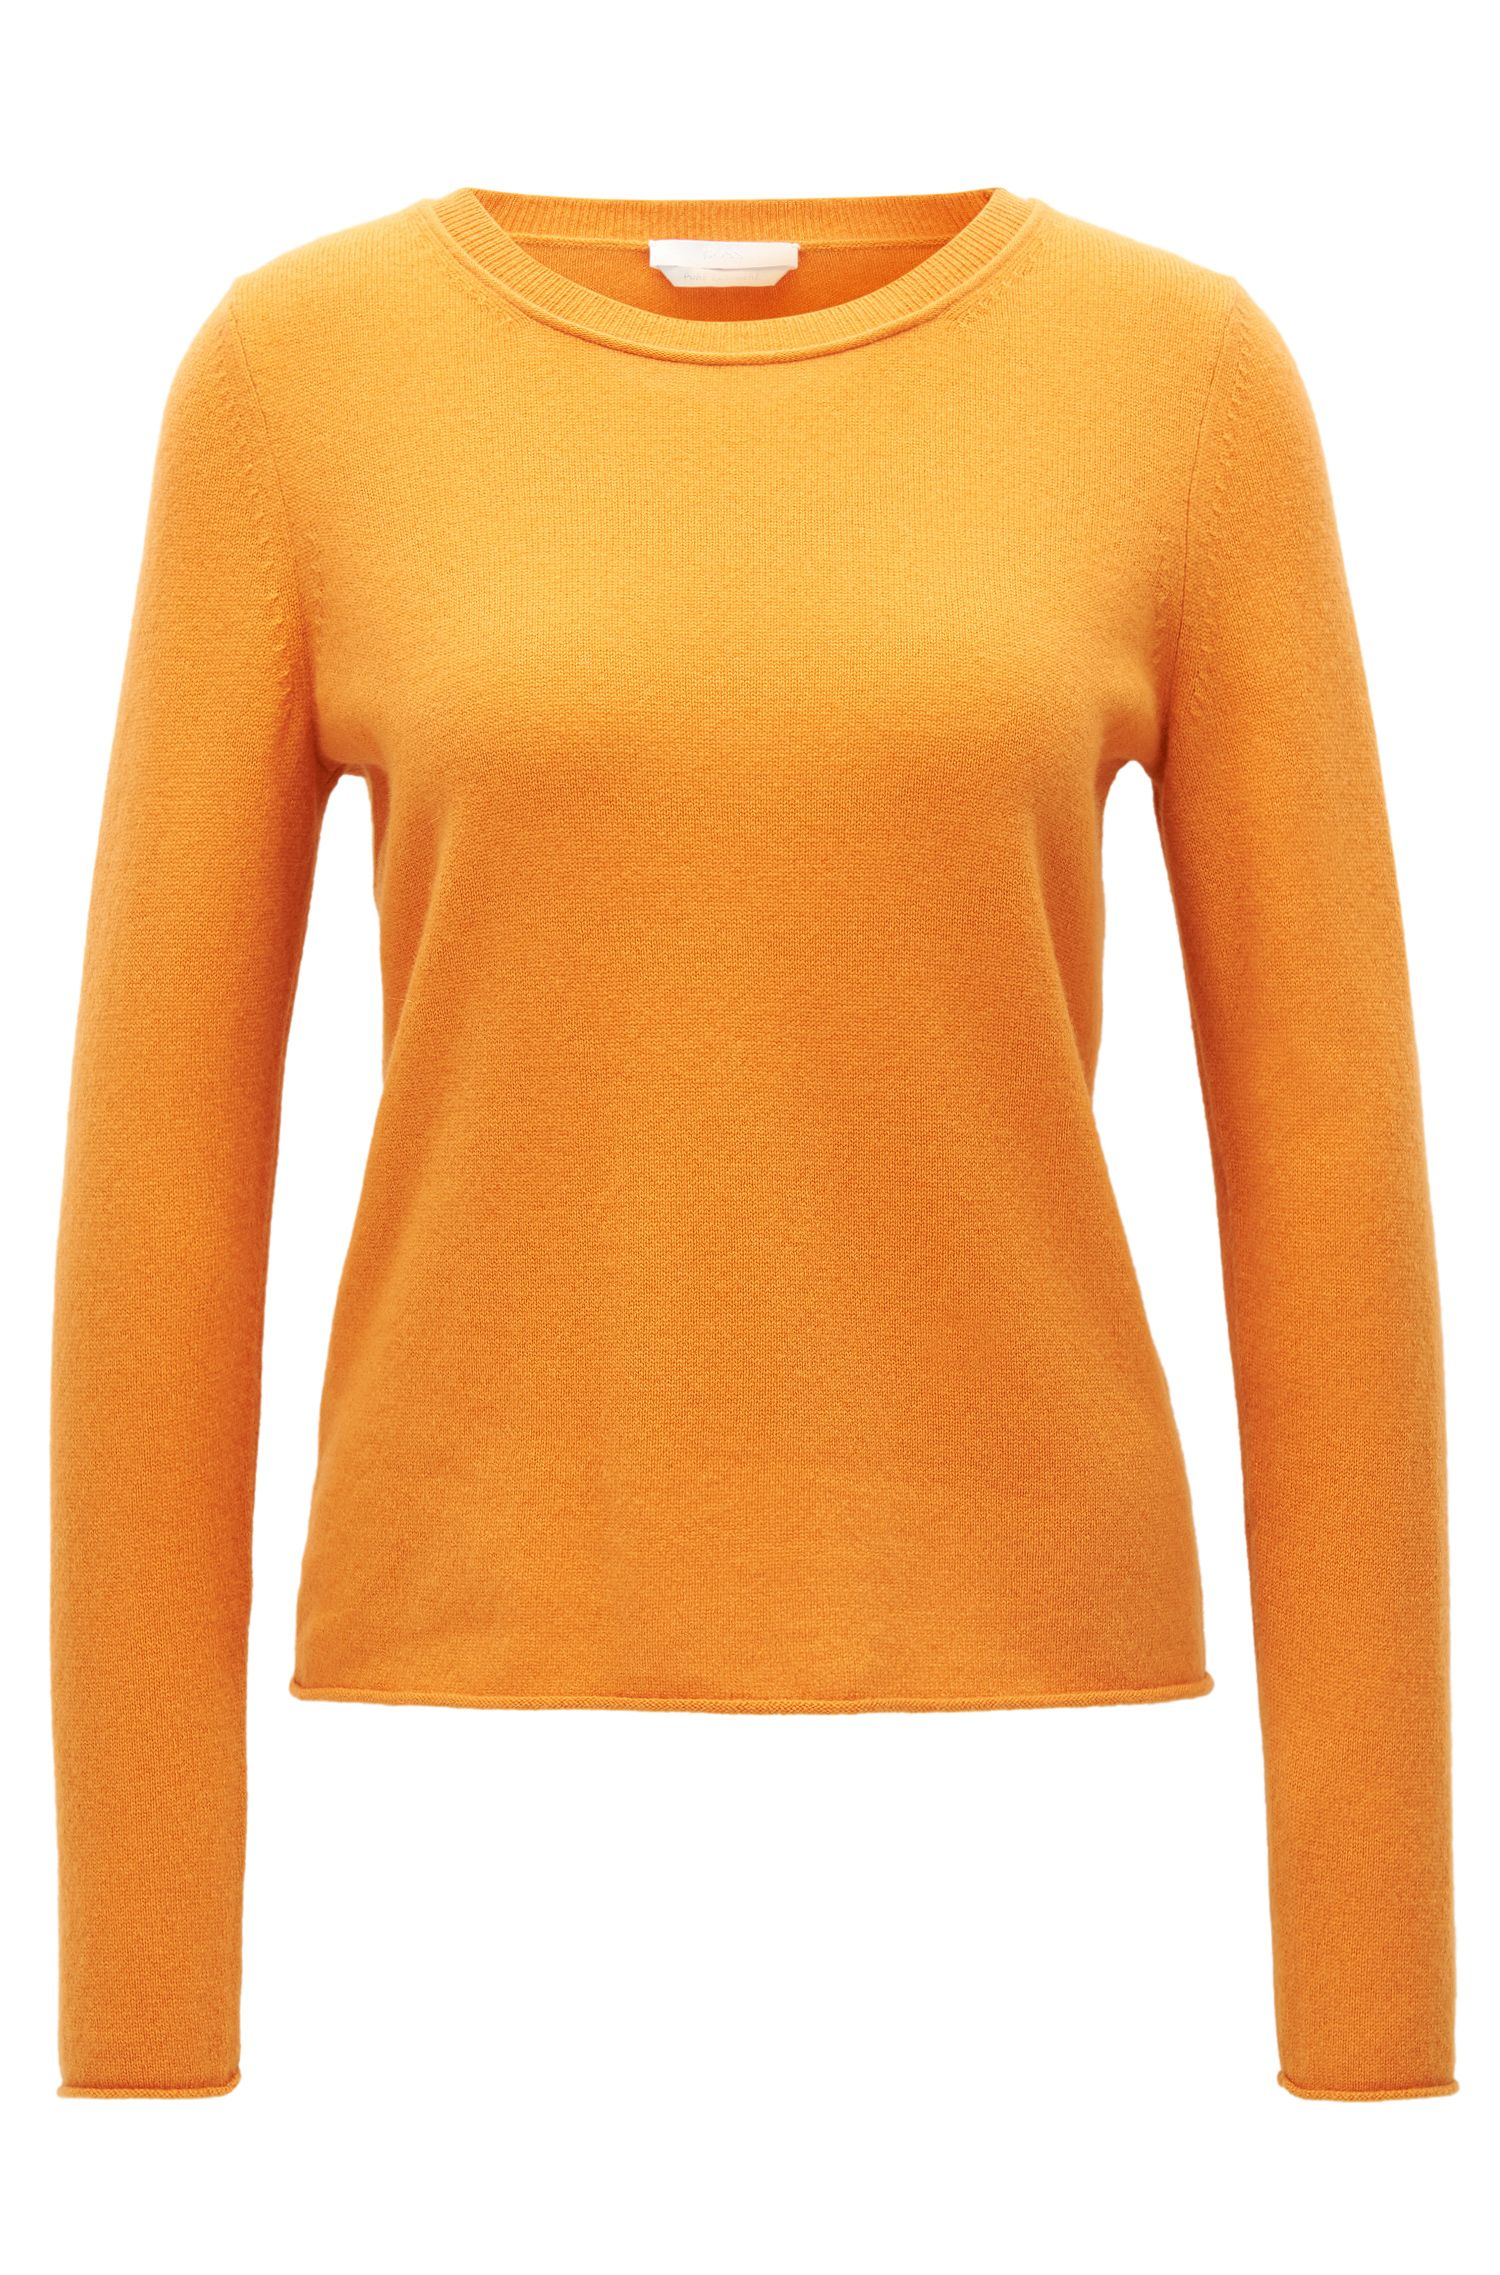 Cashmere Sweater | Faynee